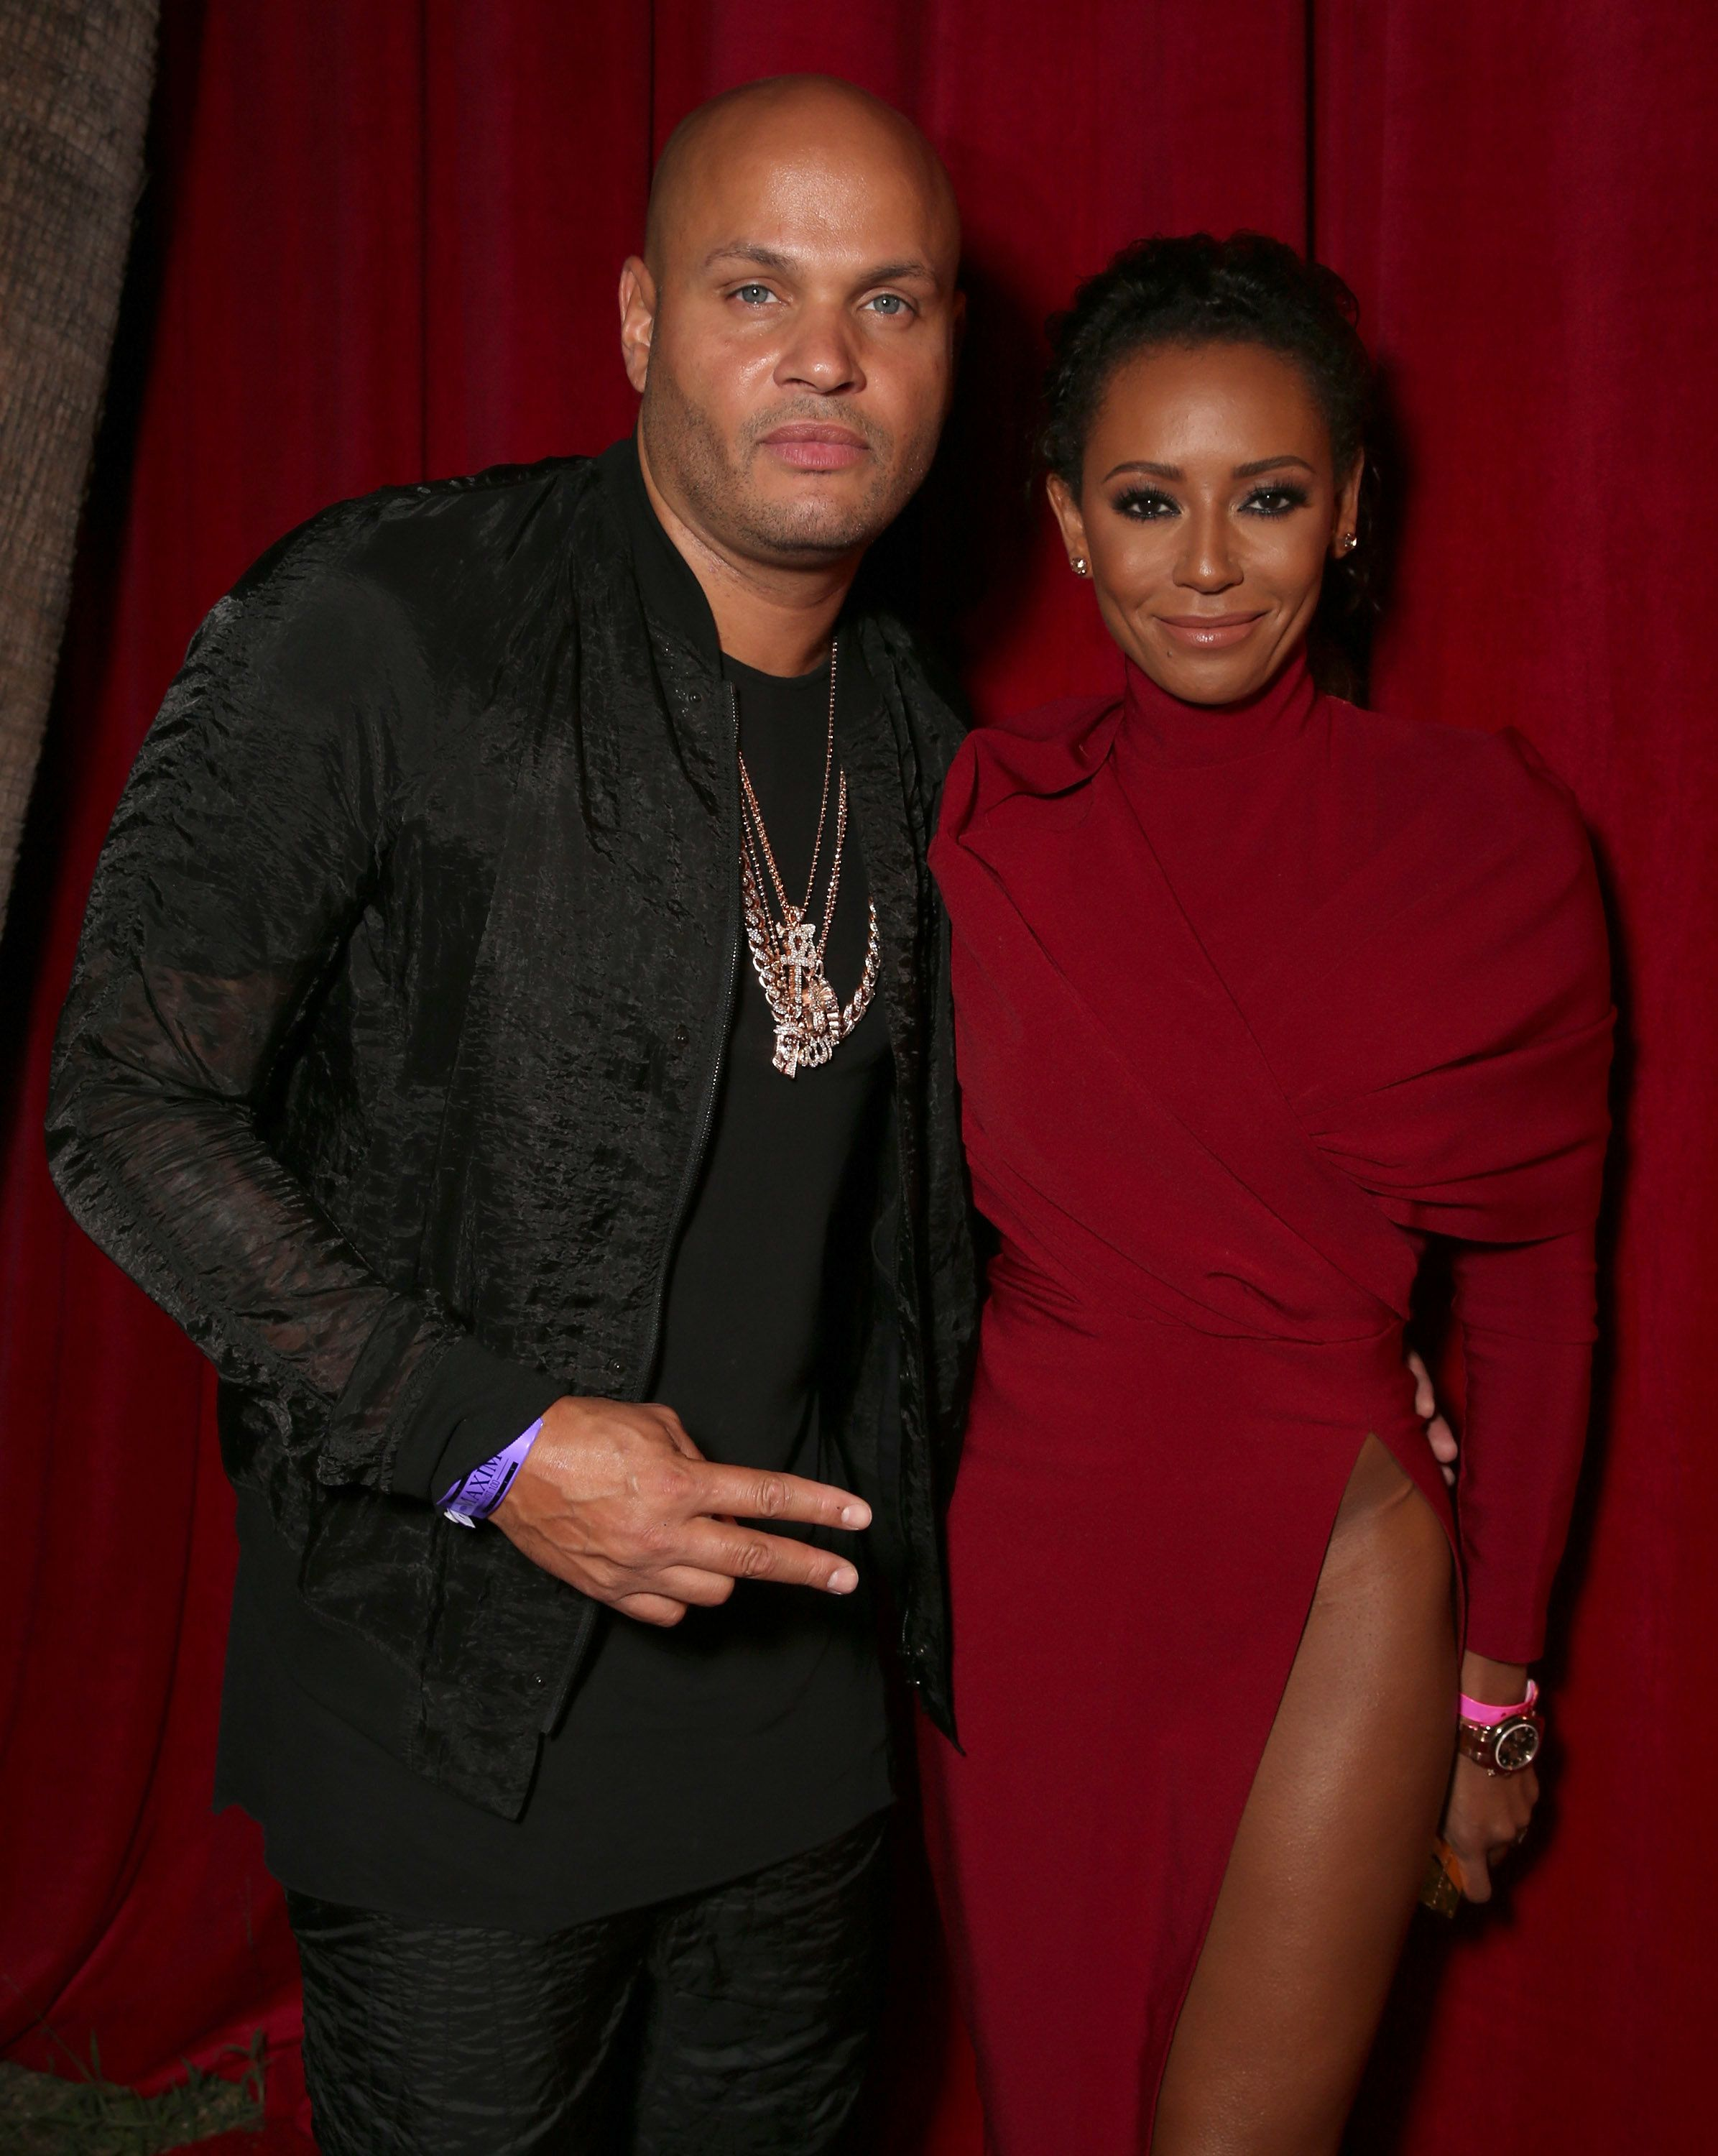 Mel B Accused Of Creating A 'Smear Campaign' Against Estranged Husband Stephen